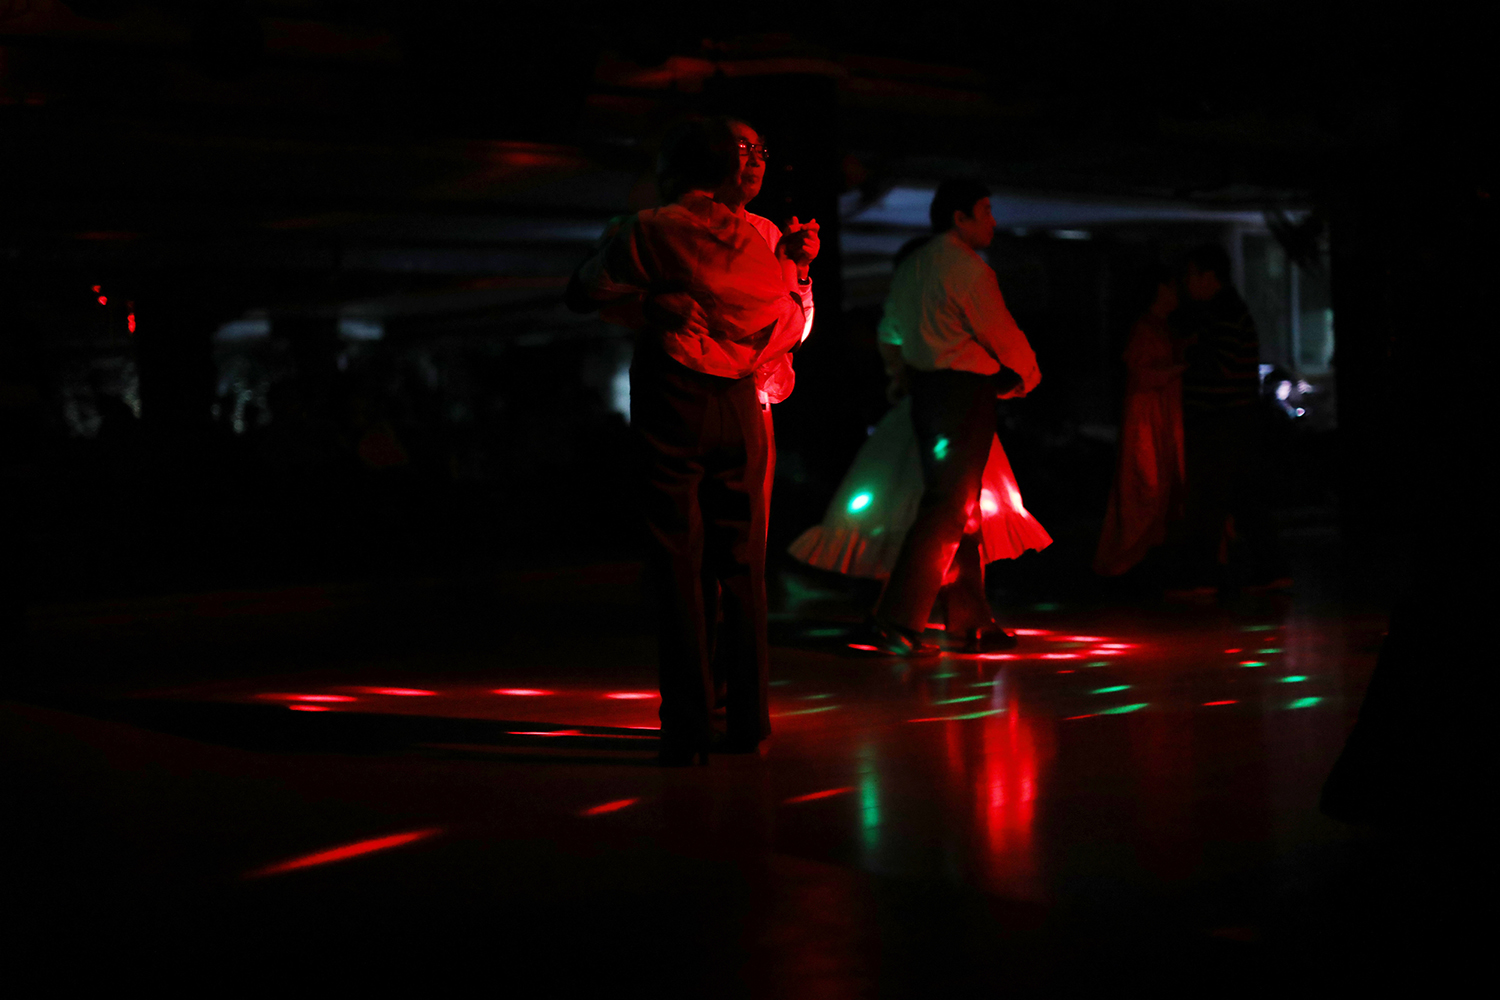 October 22, a man in his 70s dances at a club for middle-aged and elderly people in Hangzhou, Zhejiang province. China's One Child Policy has left the country with an aging crisis—almost a quarter of the country will be over 65 by 2050—and new businesses targeting elderly customers are beginning to emerge. (Liu Feiyue)